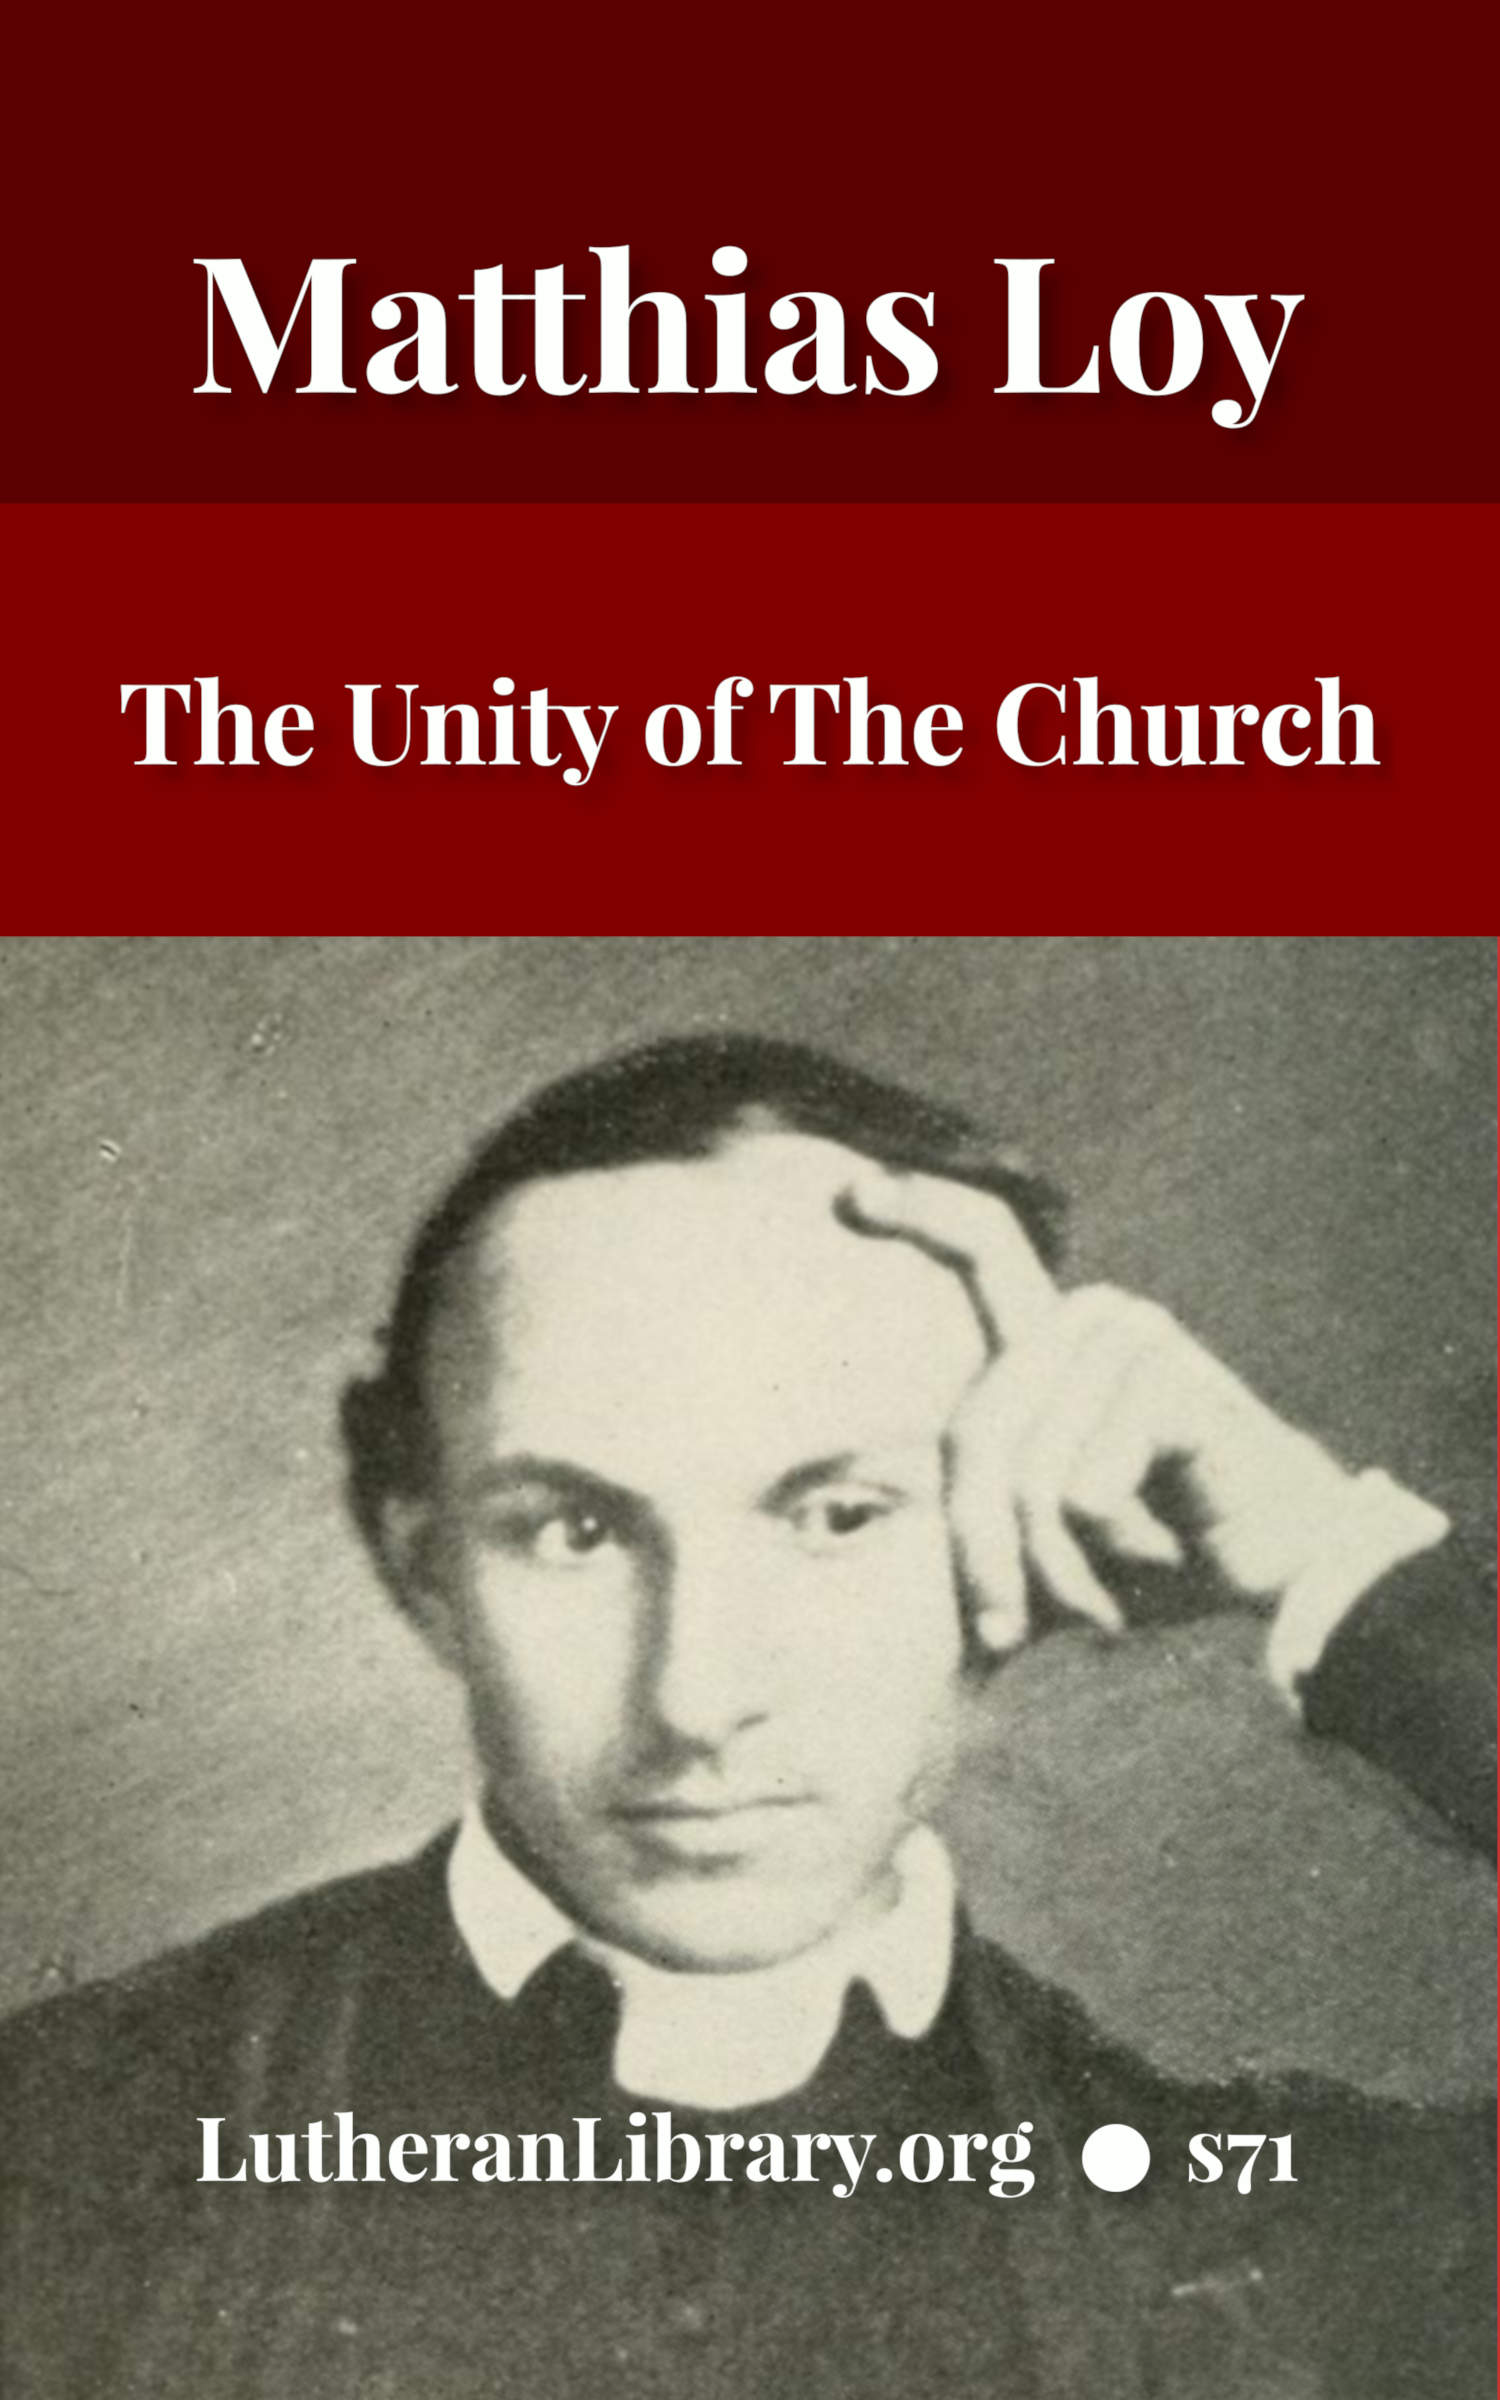 The Unity of the Church by Matthias Loy